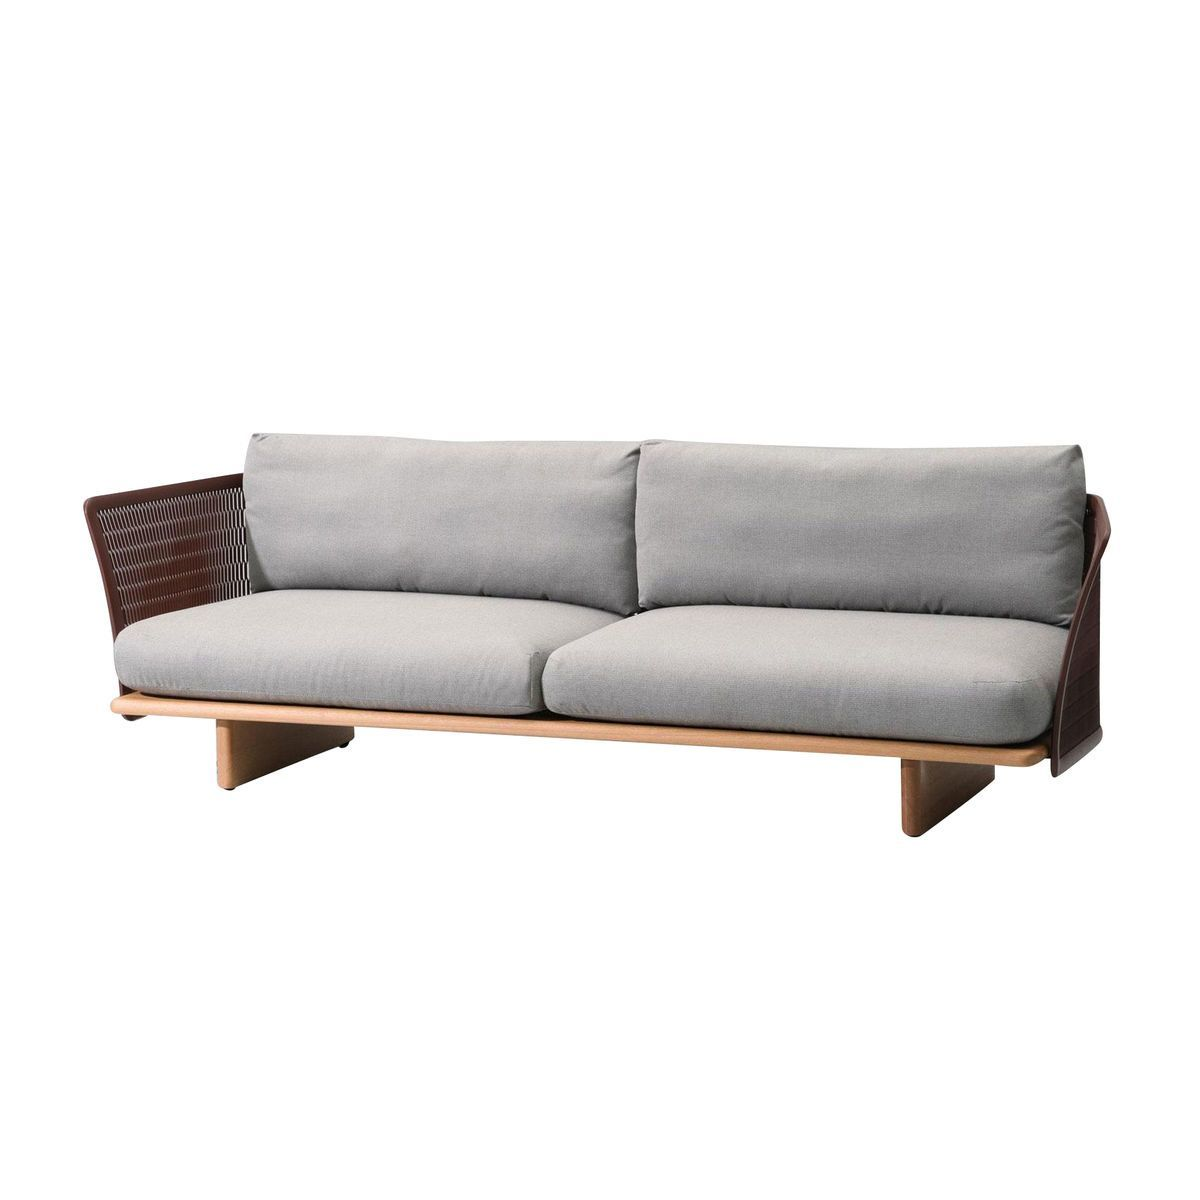 Grey outdoor sofa incredible grey wicker sectional patio for Sectional sofas for outdoor